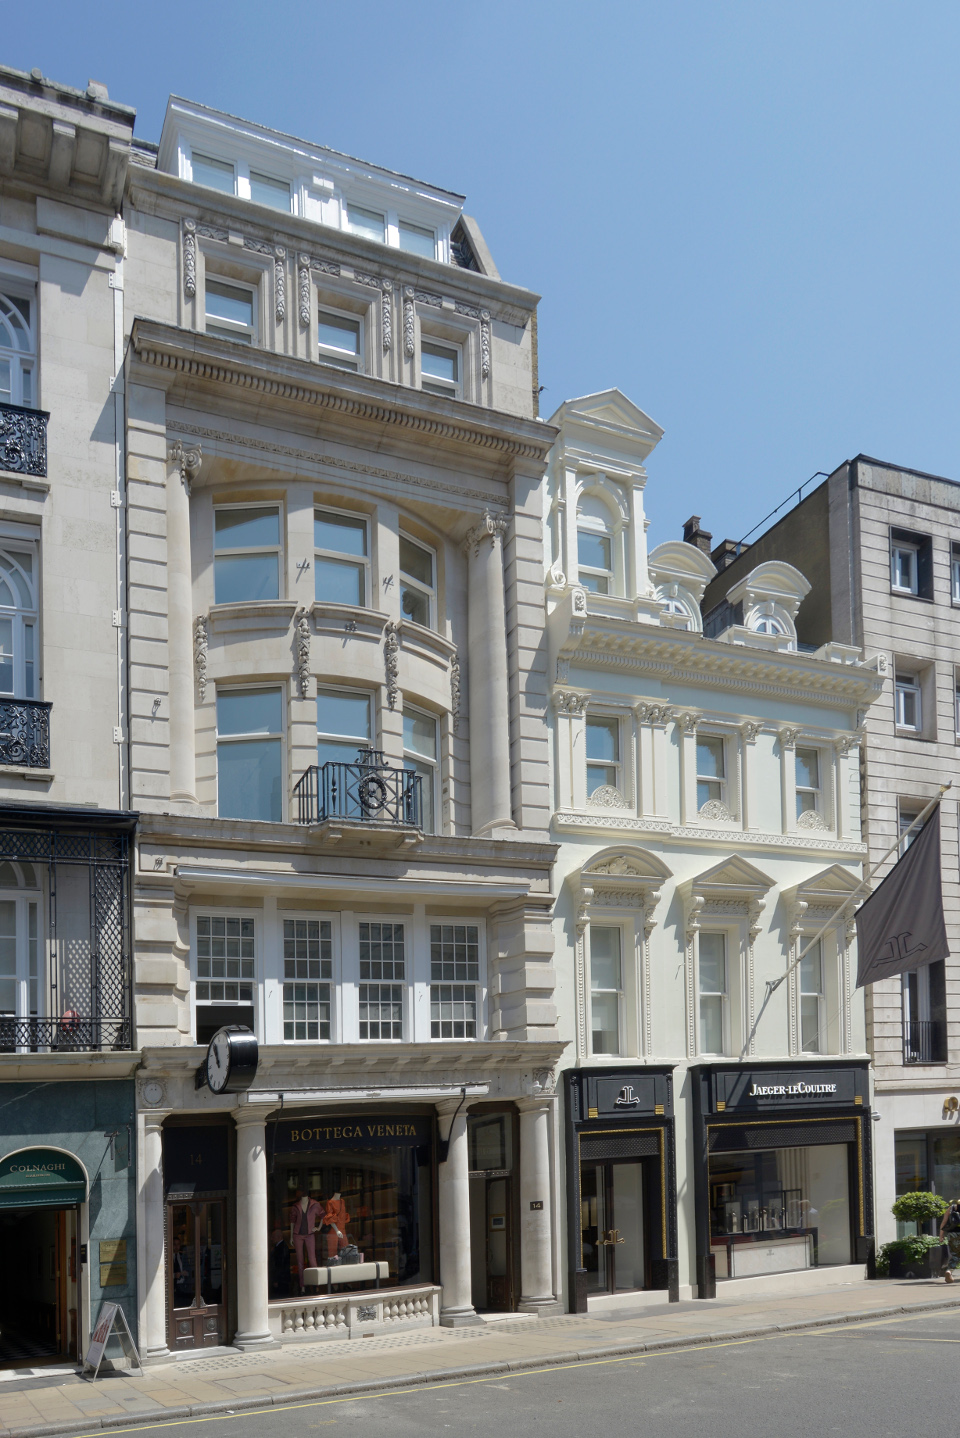 13-14 Old Bond Street external 1.jpg